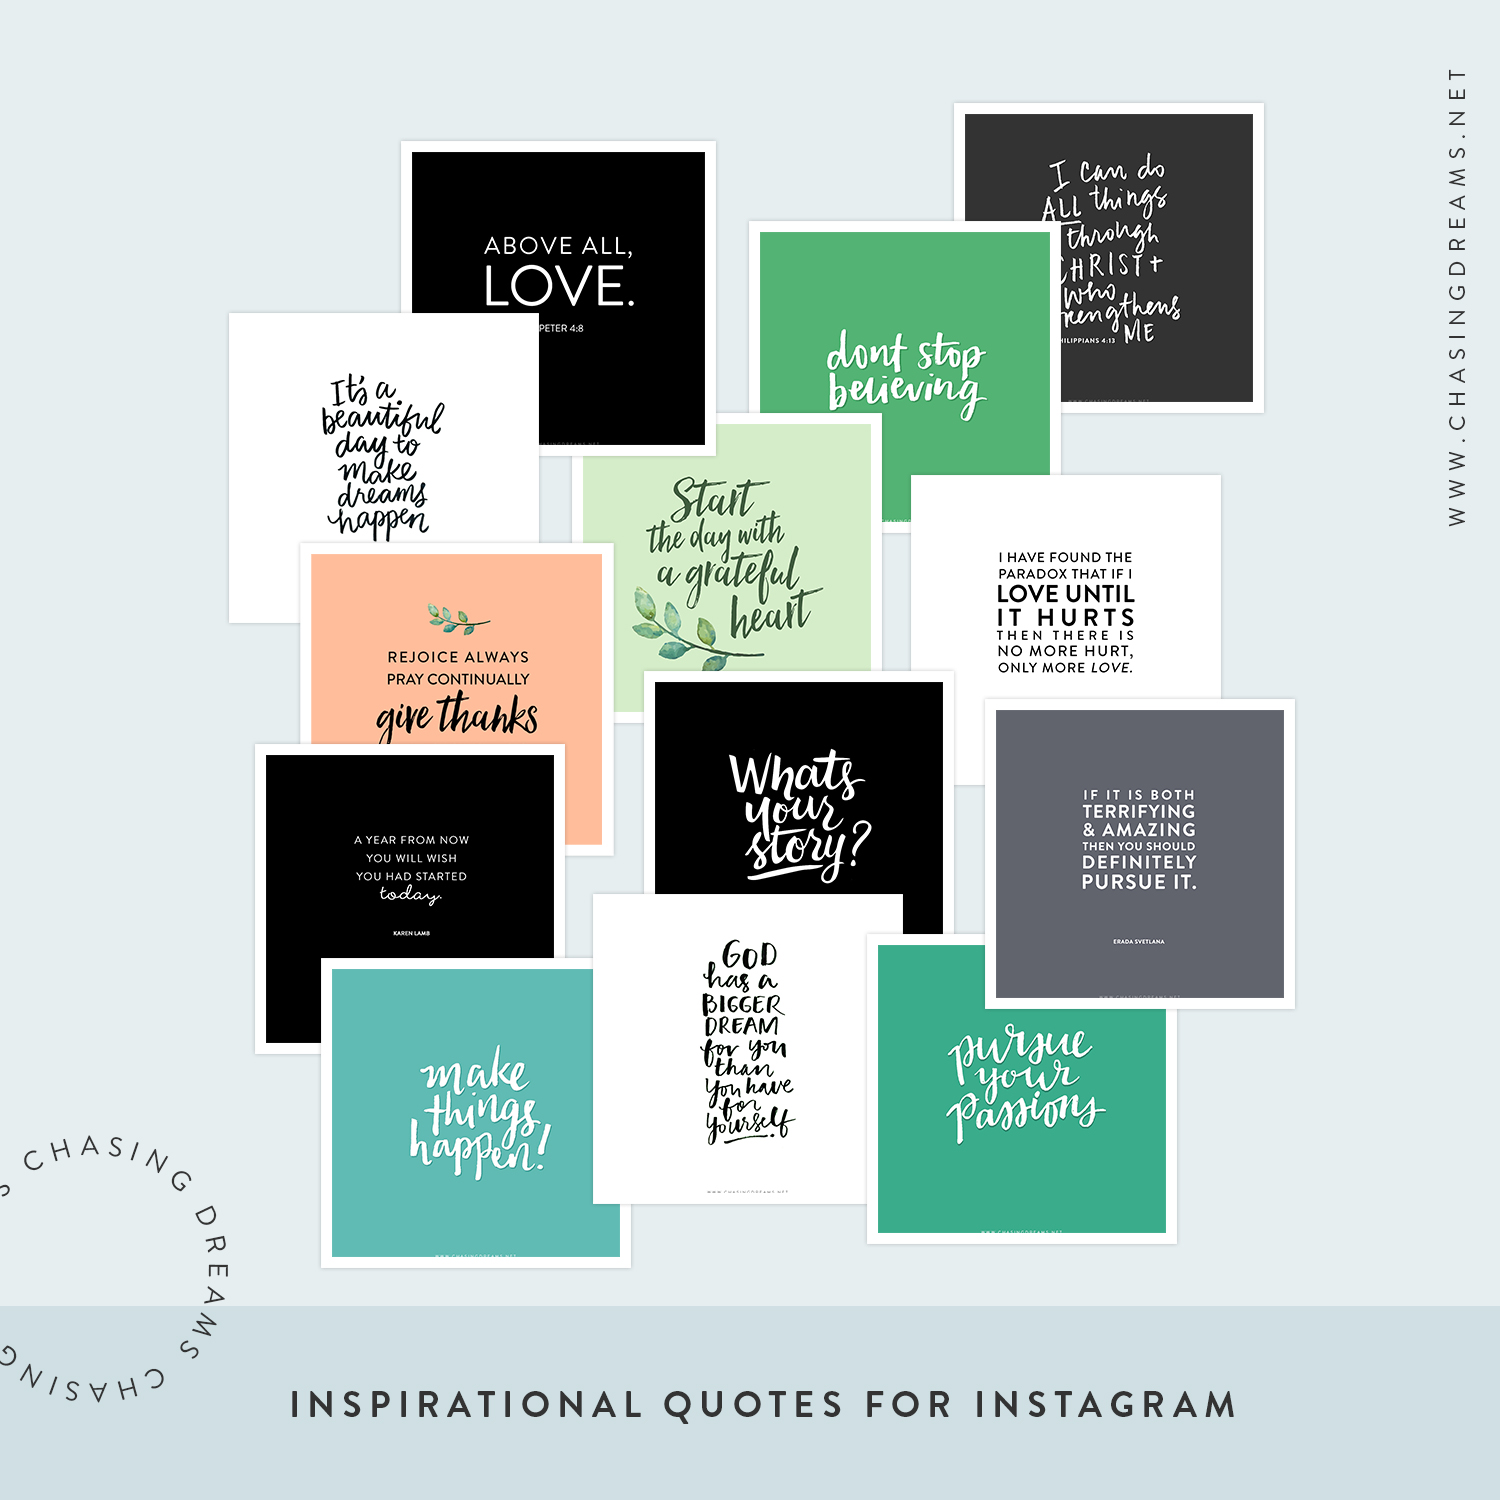 Instagram Quotes Chasing Dreams Blog